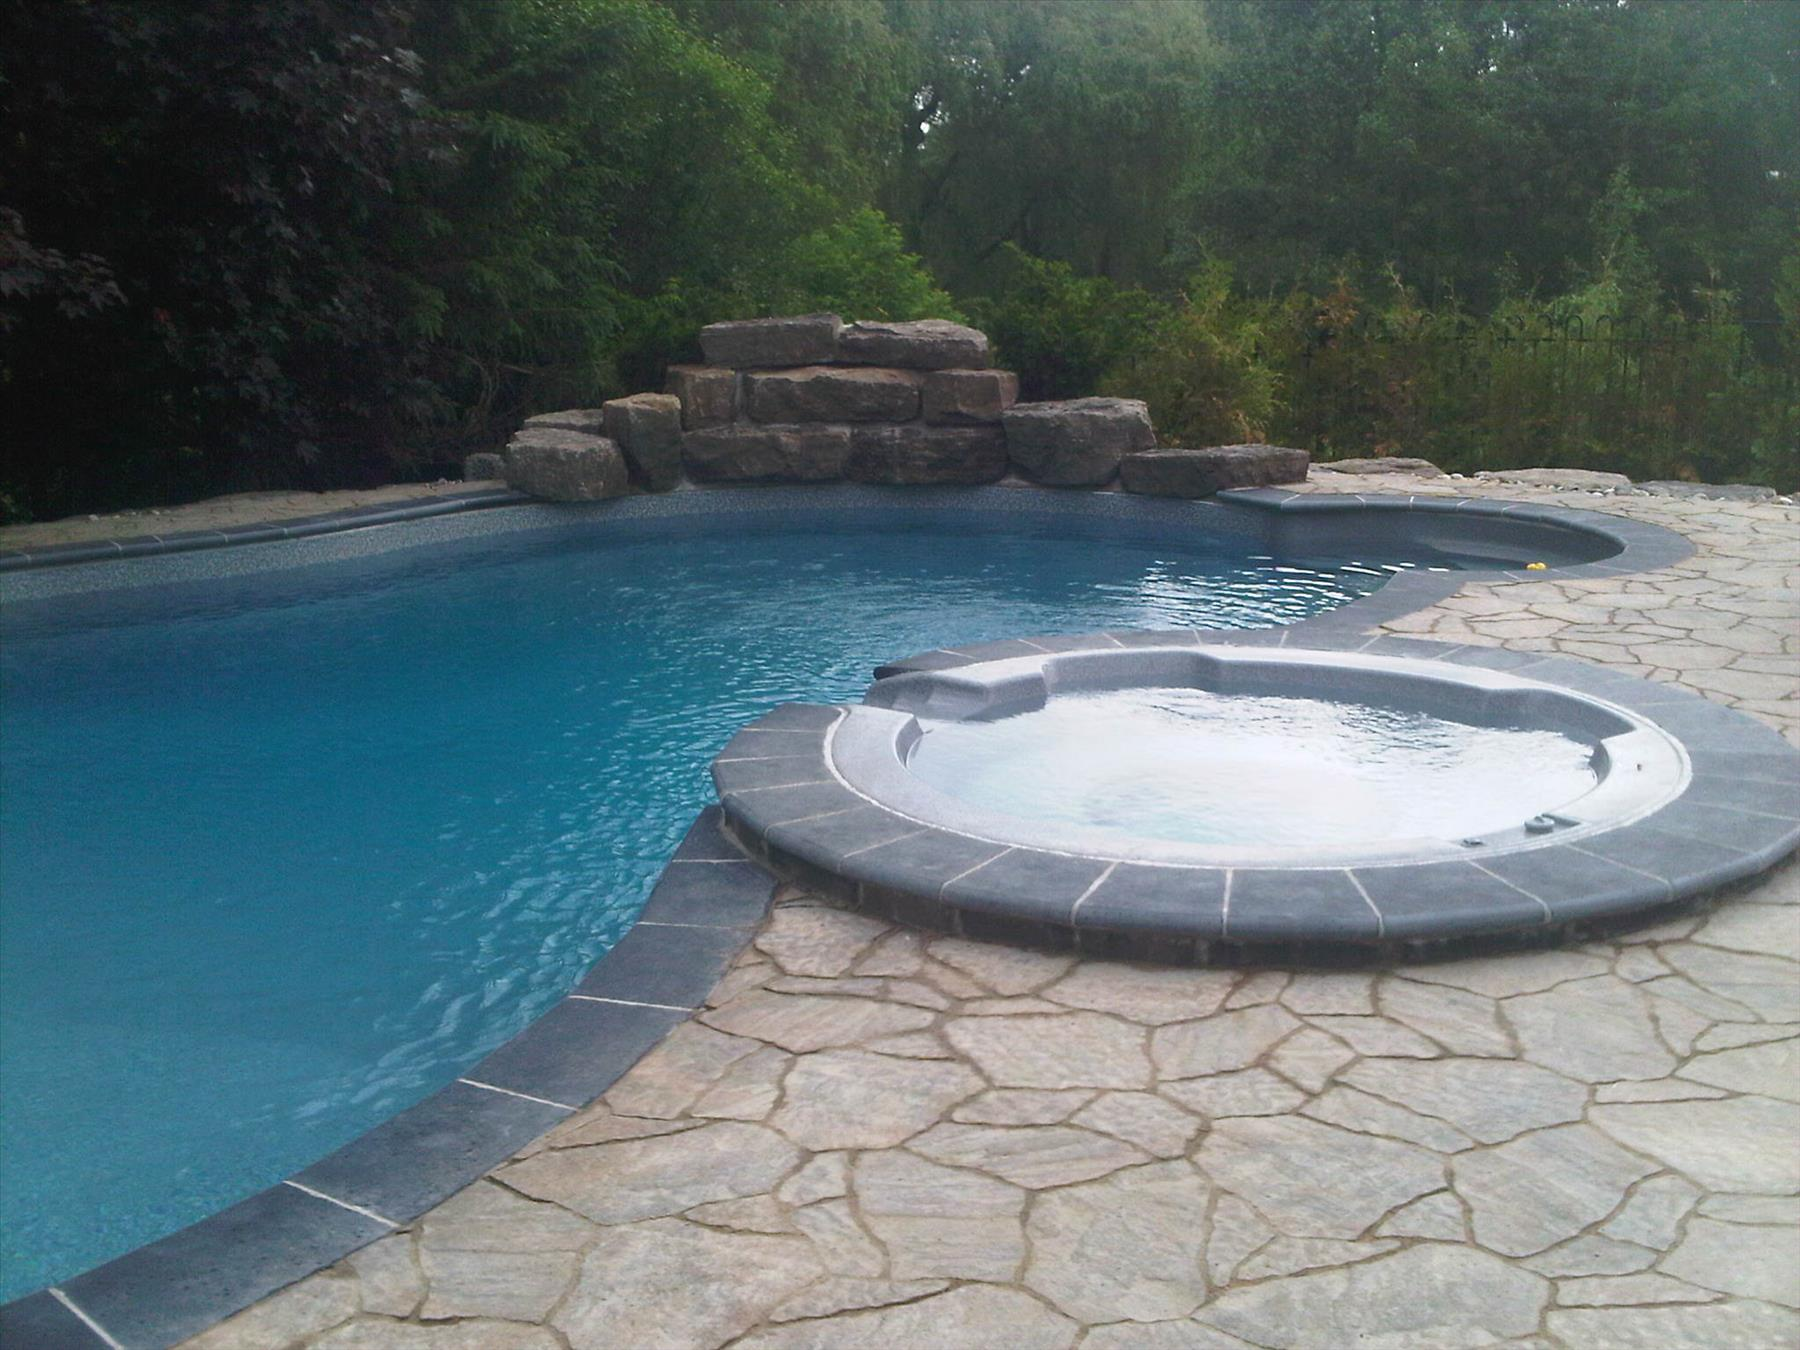 Precast stone around pool and hot tub